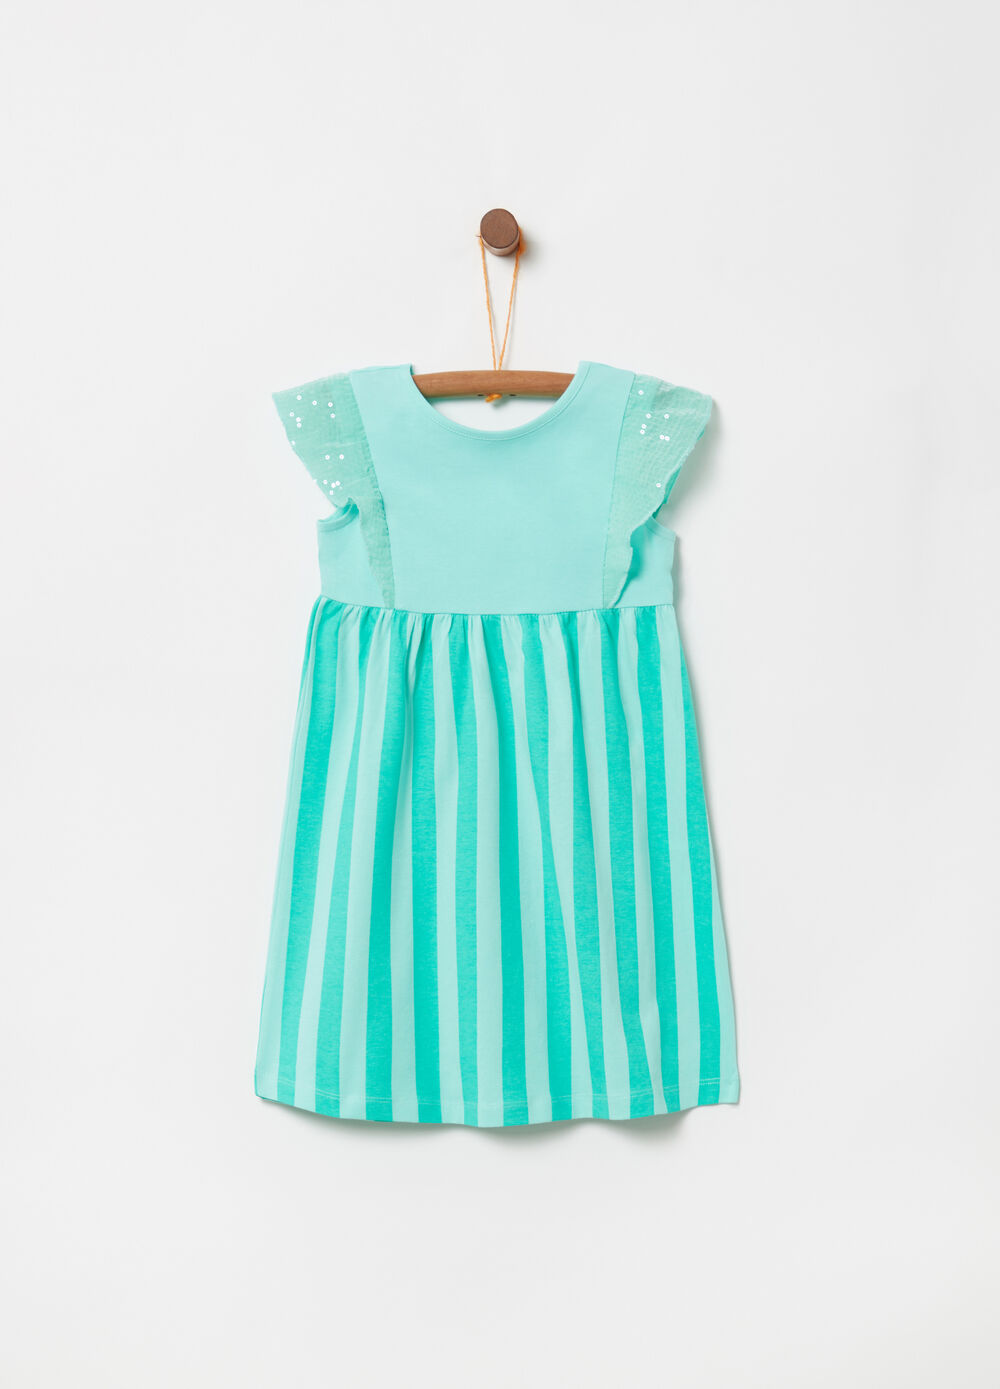 Dress with flounce, sequins and stripes